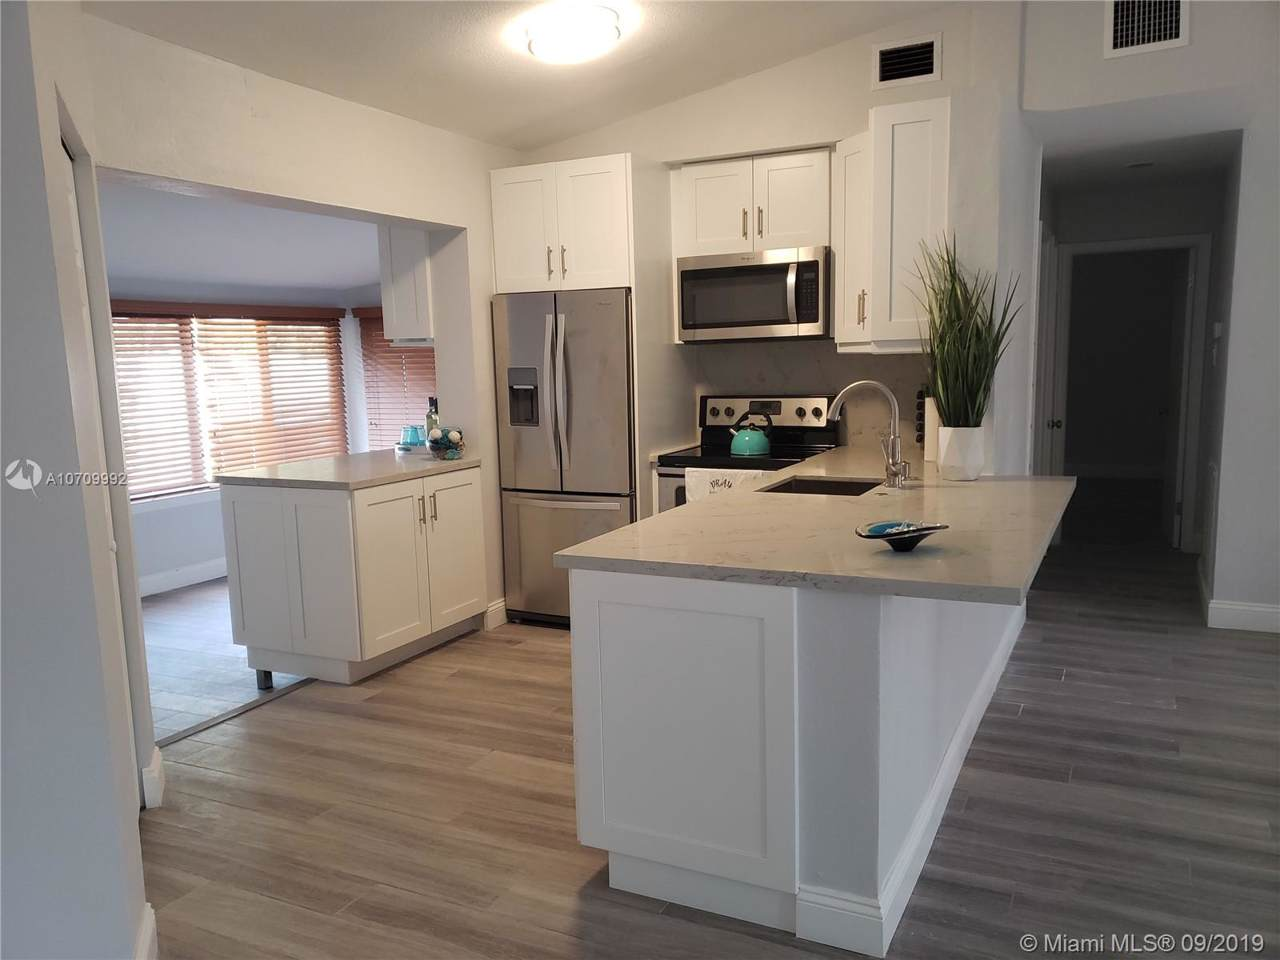 2824 6th Ave - Photo 1